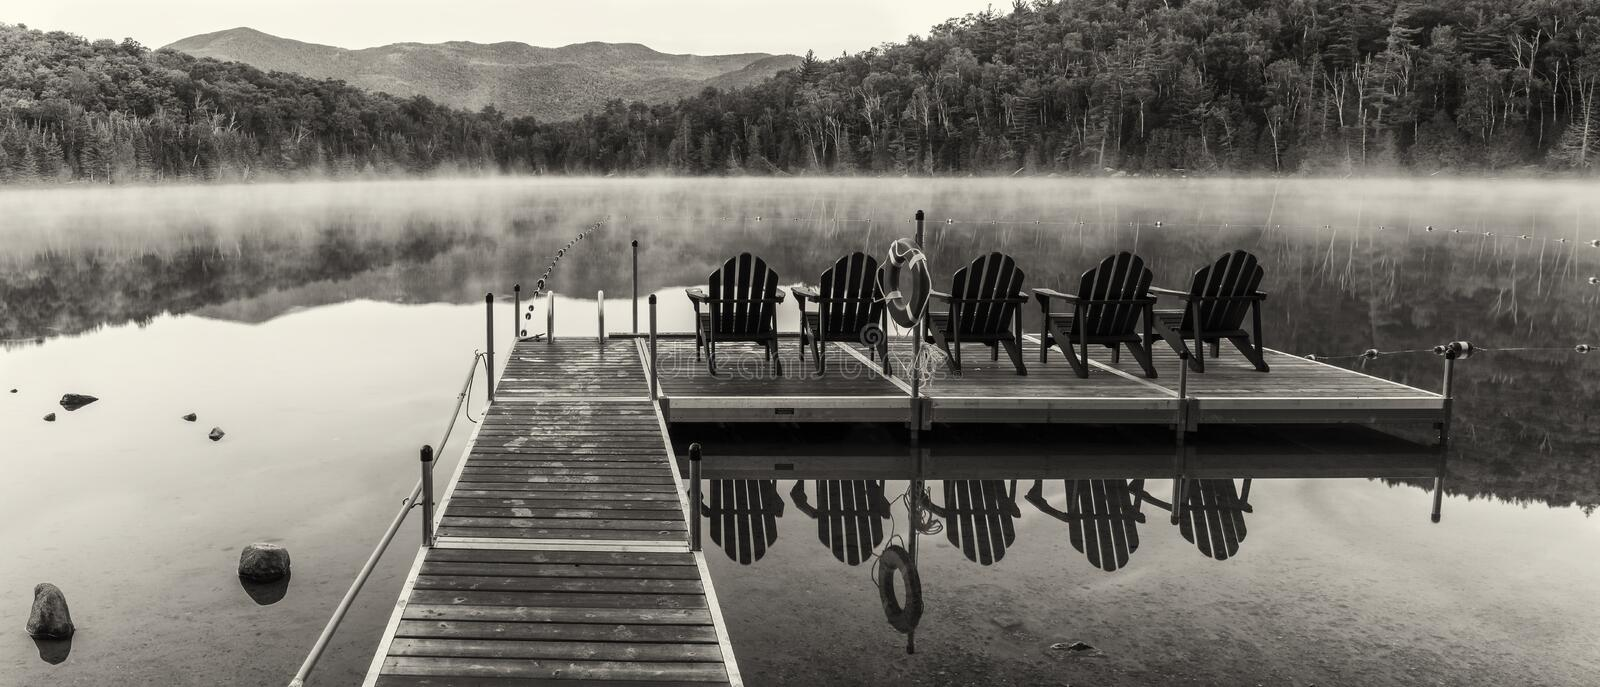 Heart Lake Dock Black and White Panorama. Black & white panorama of the Heart Lake dock on a misty morning in the High Peaks region of the Adirondack Mountains stock photography